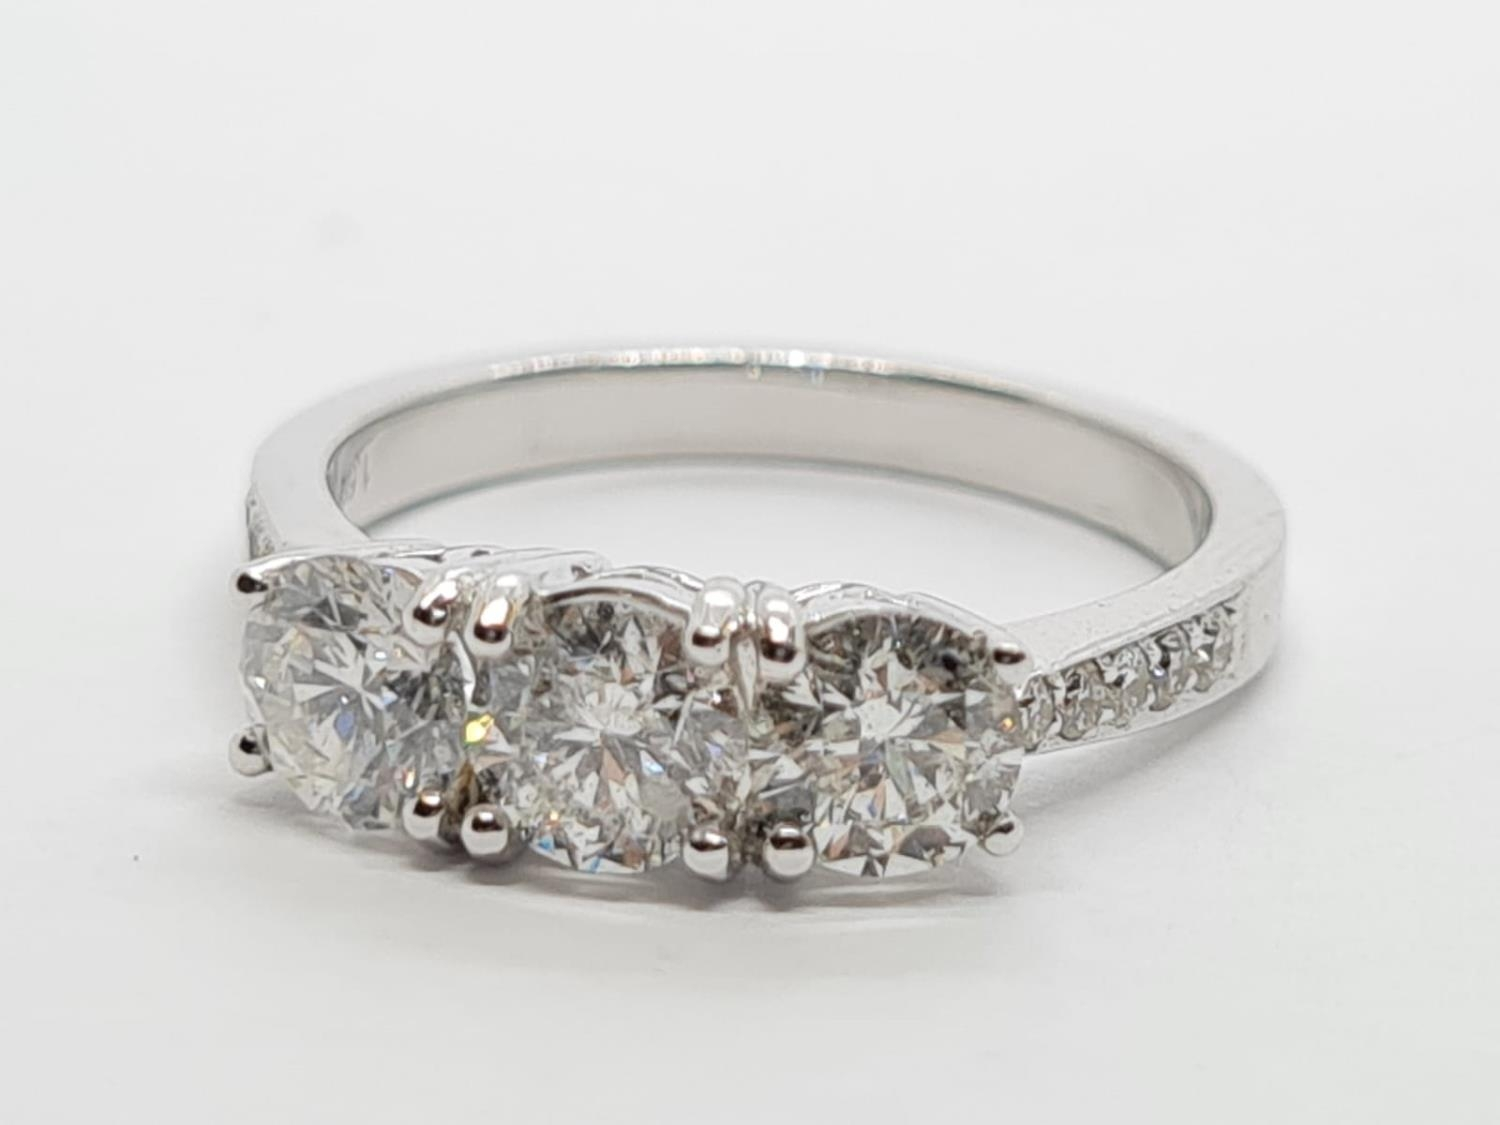 18ct White Gold with Trilogy set of 1.5ct Diamonds and further encrusted diamonds on the shoulder. - Image 2 of 6